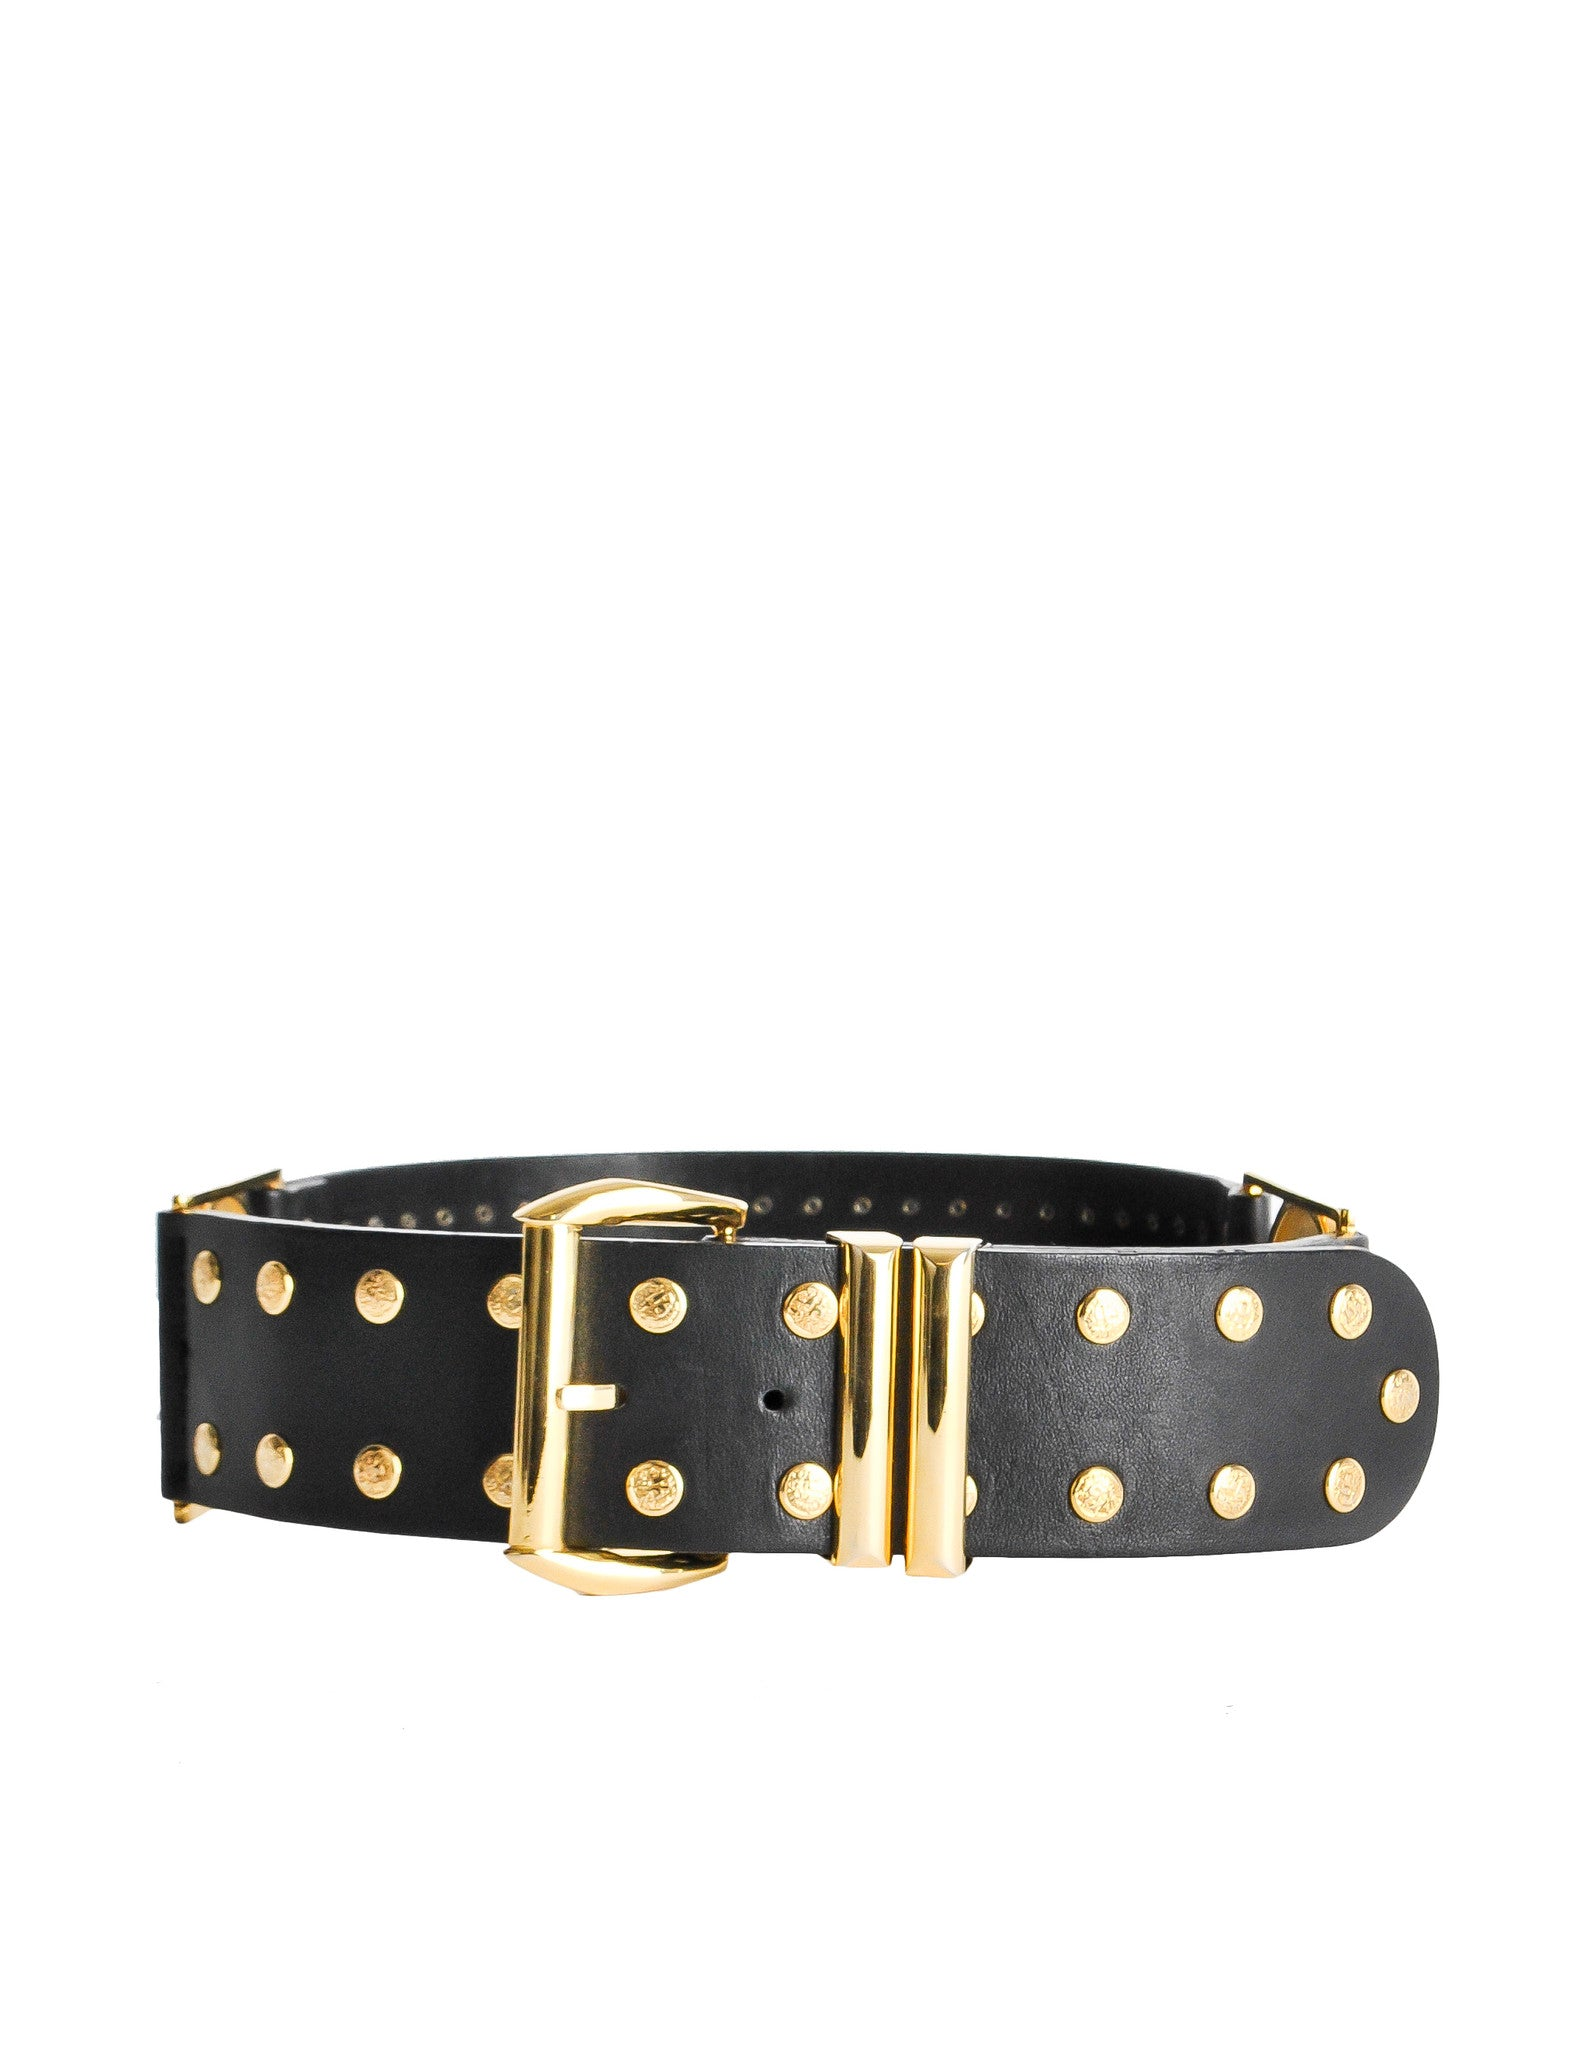 Versace Vintage Black and Gold Studded Medusa Belt - Amarcord Vintage Fashion  - 1